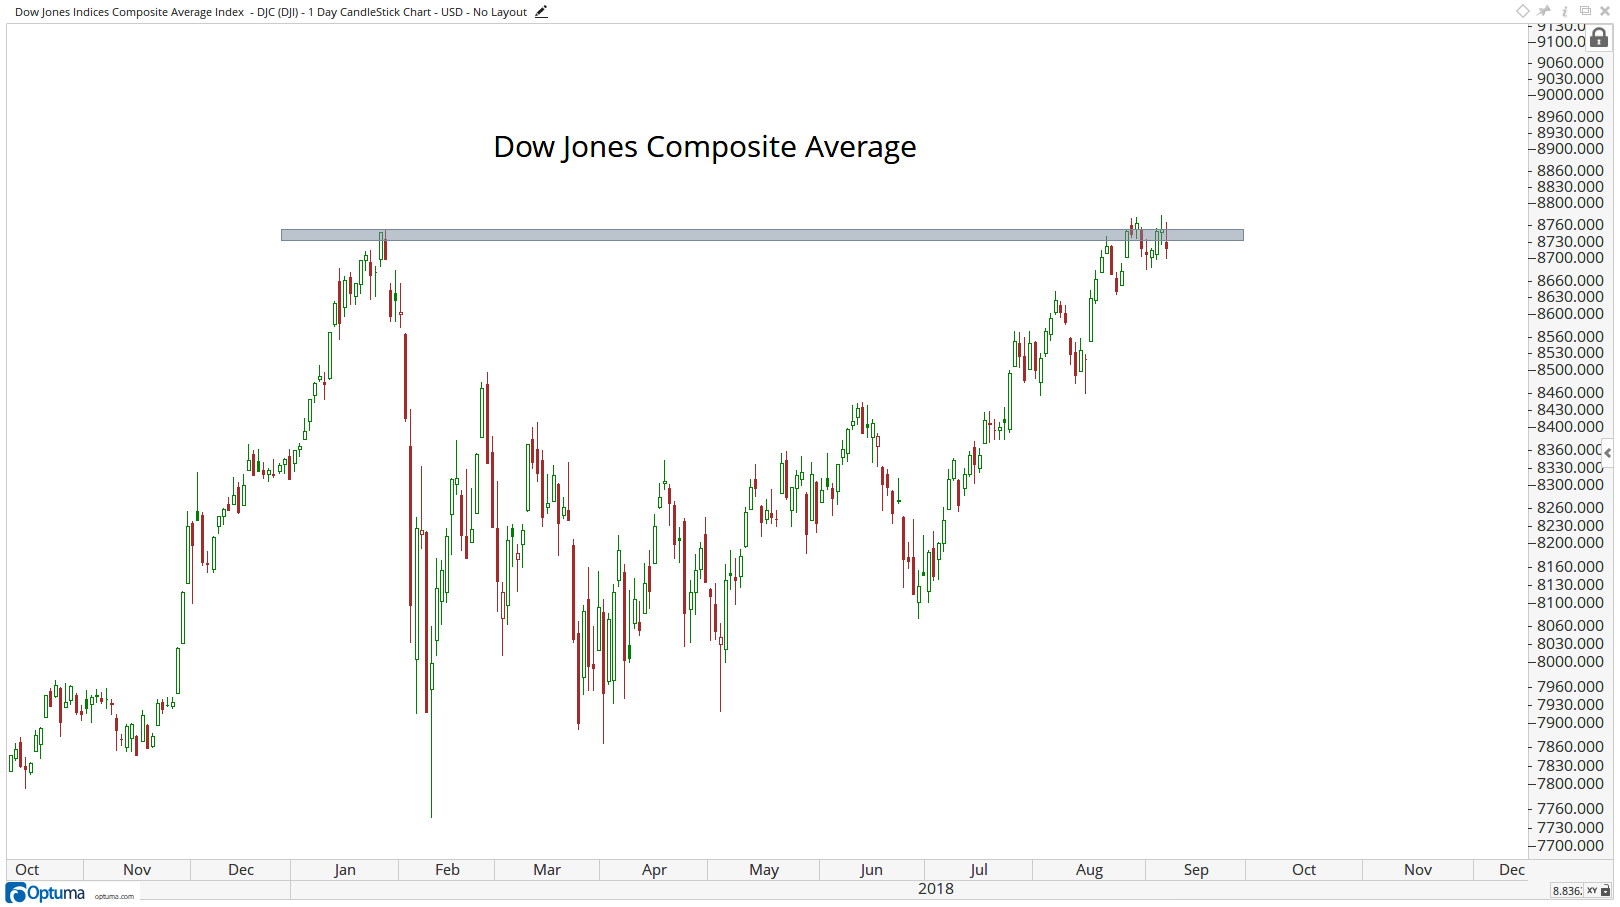 Technical chart showing the performance of the Dow Jones Composite Average